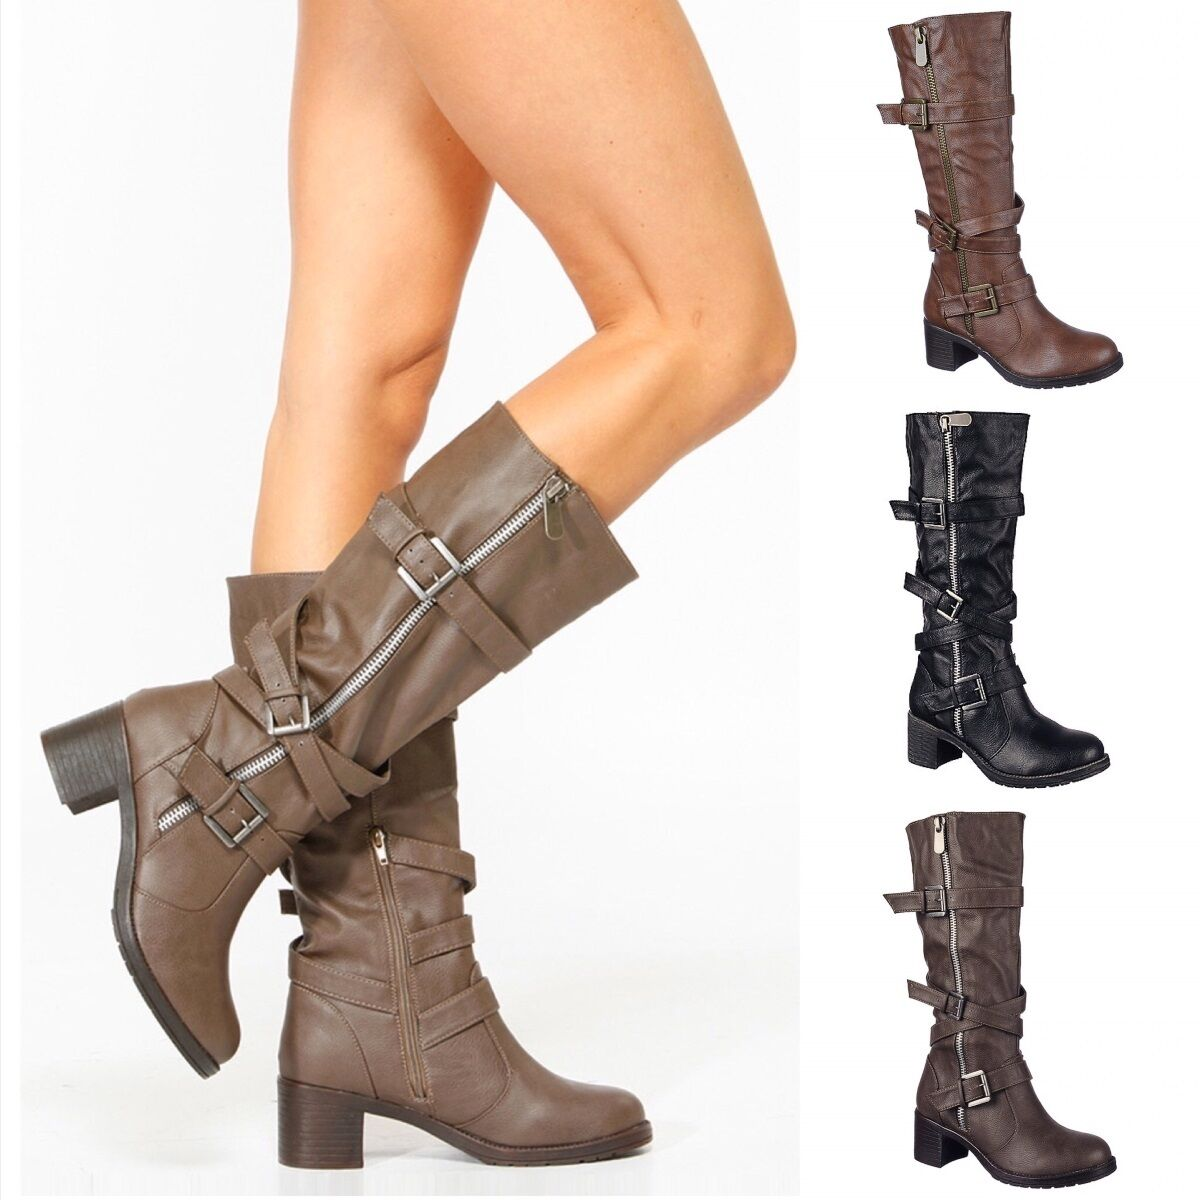 Women's Knee high Mid calf Buckle Riding Combat Military Boo